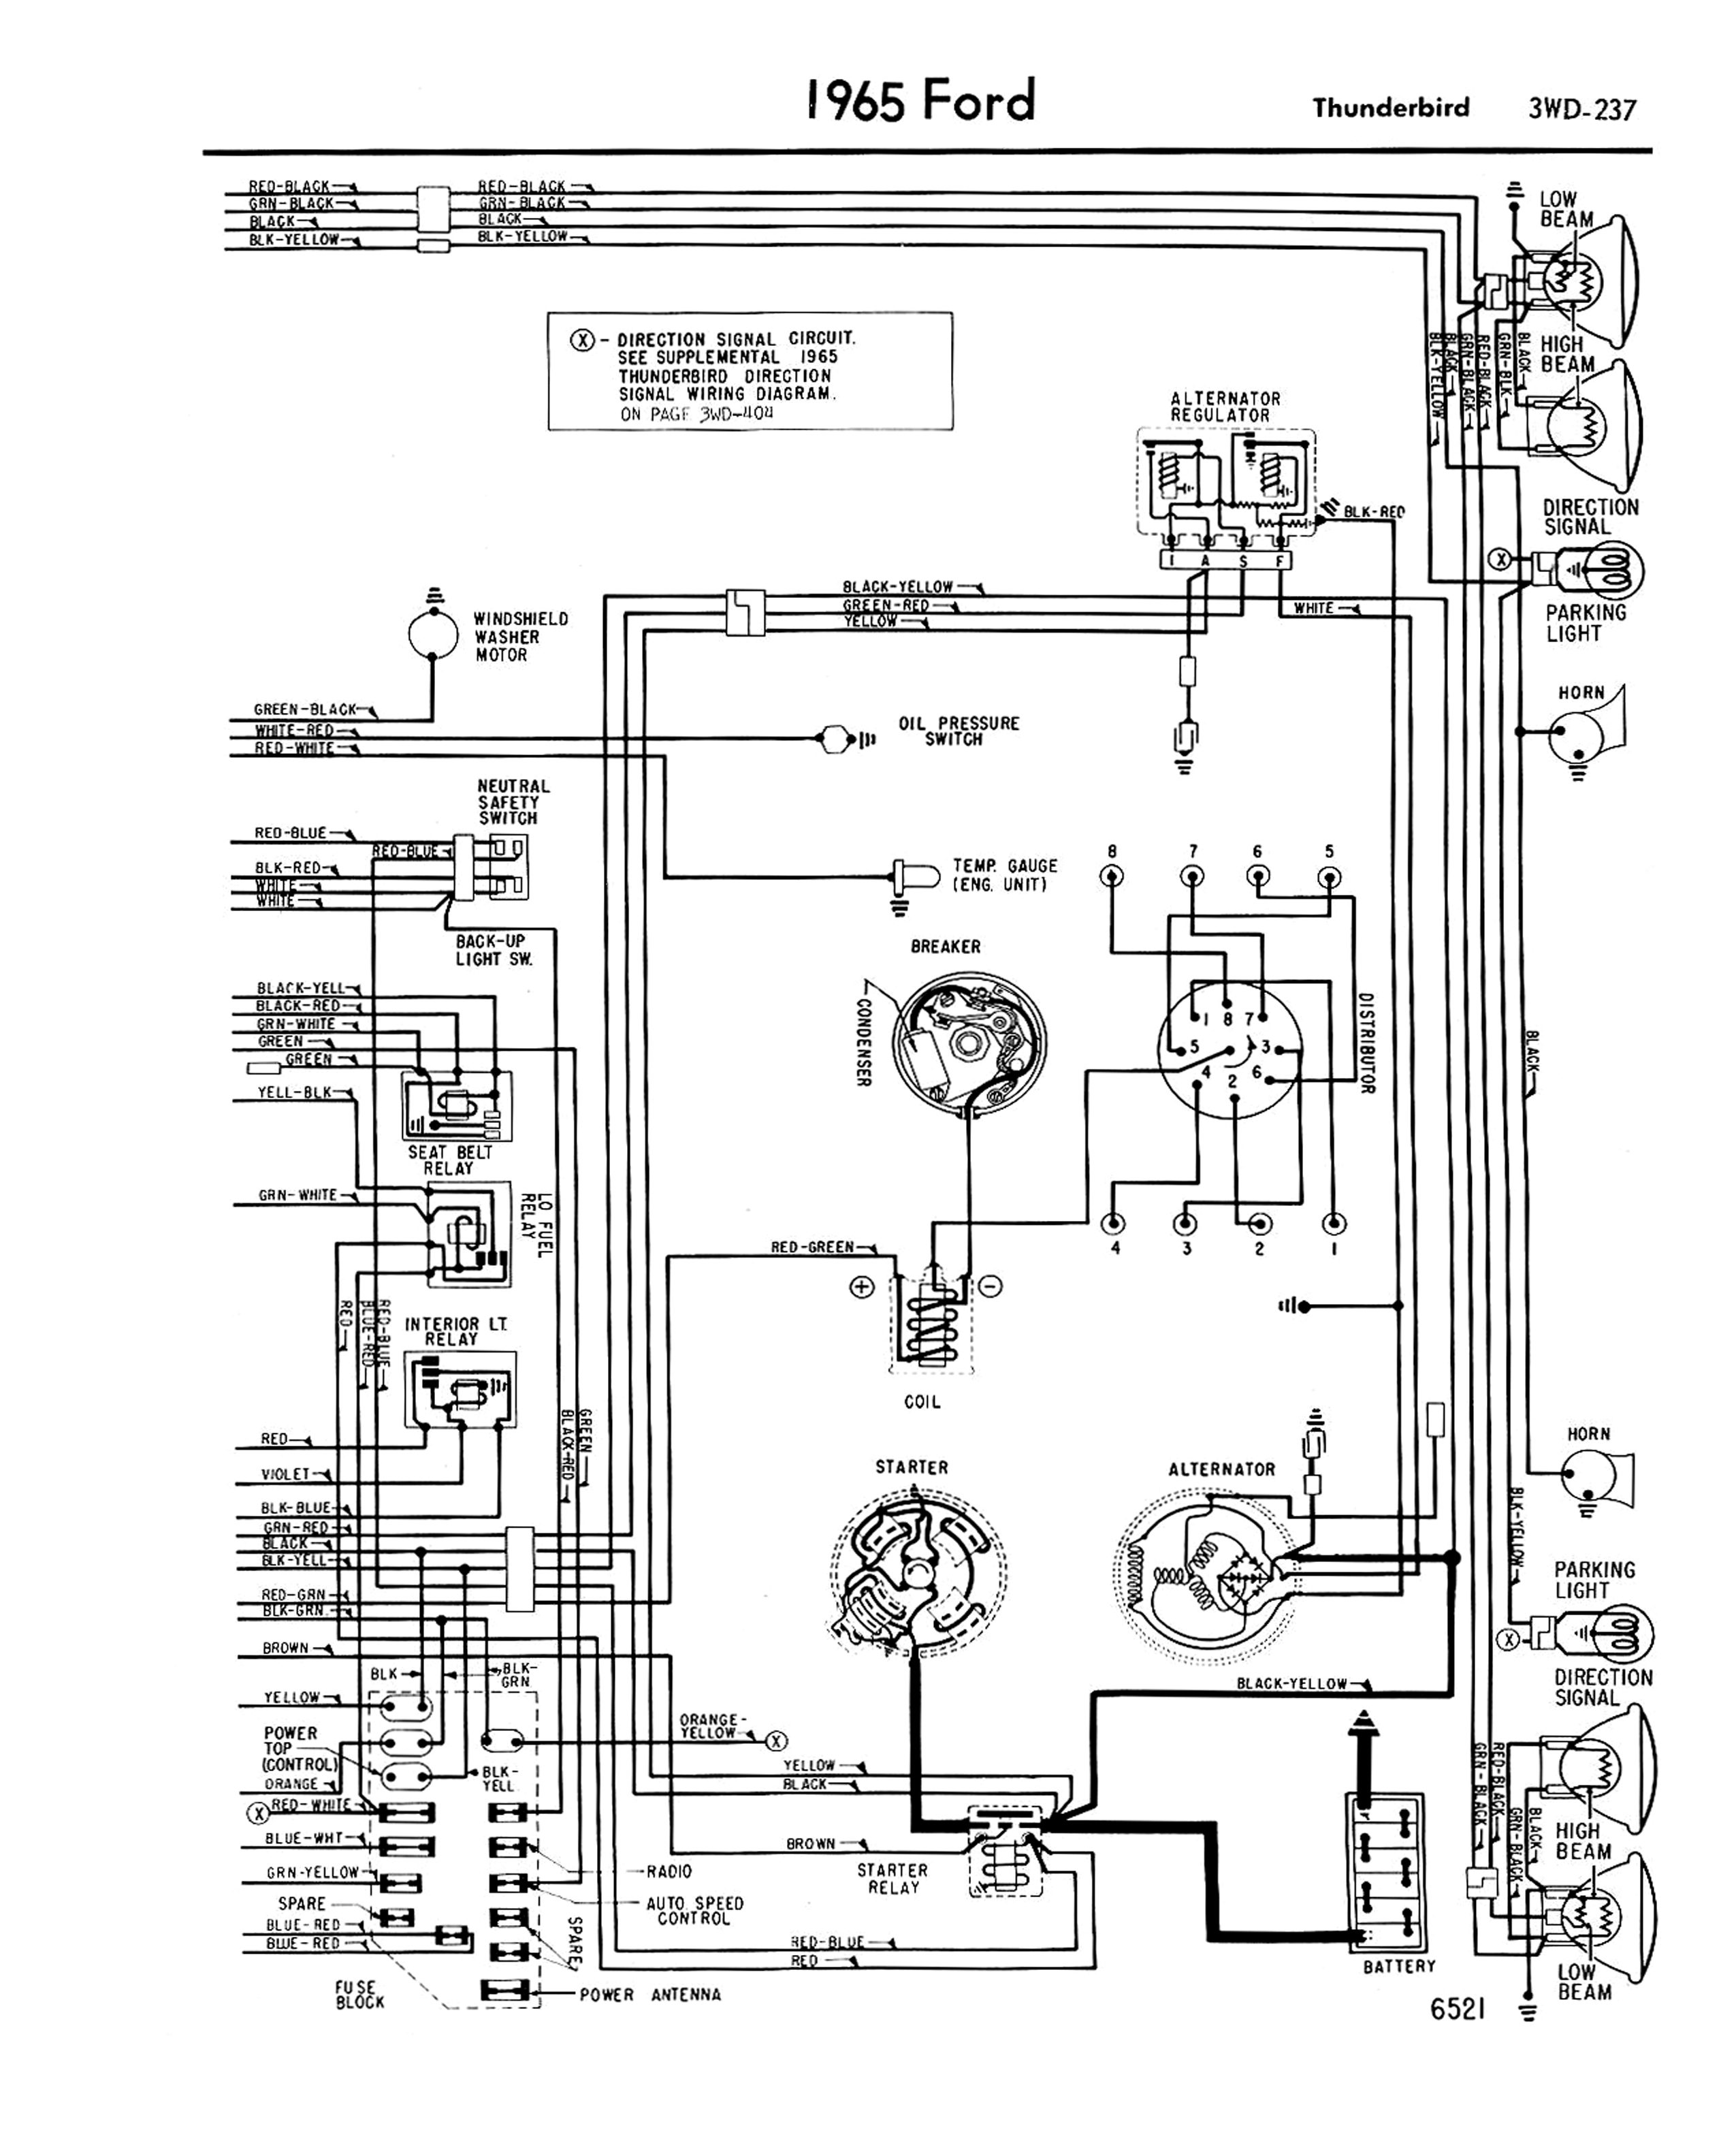 1958 Thunderbird Wiring Diagram Diagrams Best 68 Mustang Harness Ford Vacuum Free Download Schematic 1968